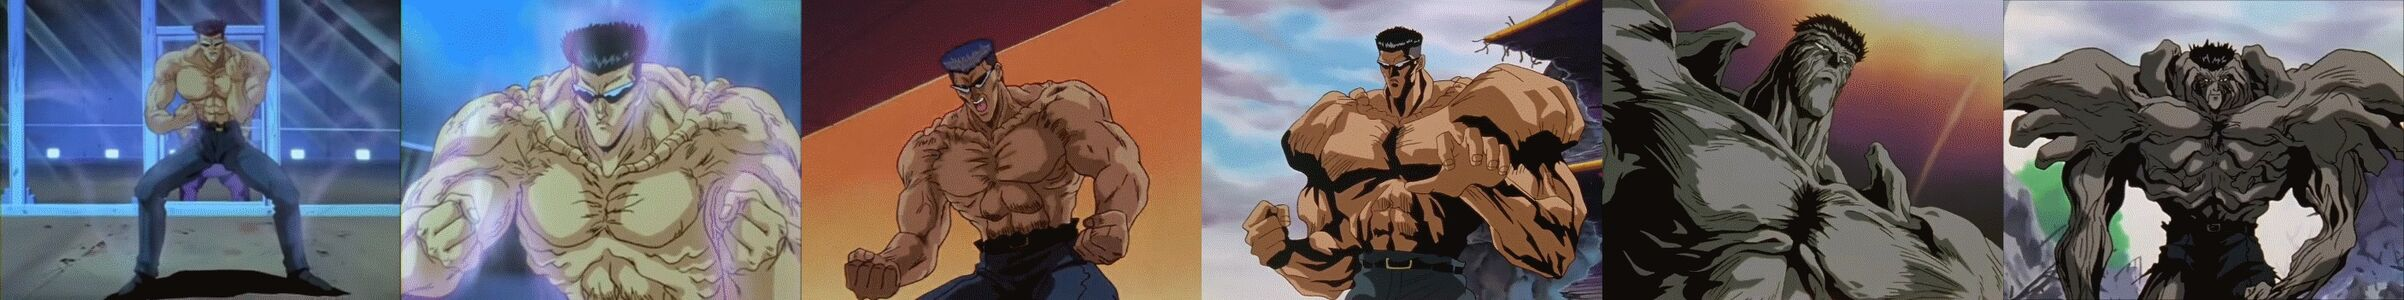 Toguro's power in the order of 30%, 45%, 60%, 80%, 100%, and 120%.